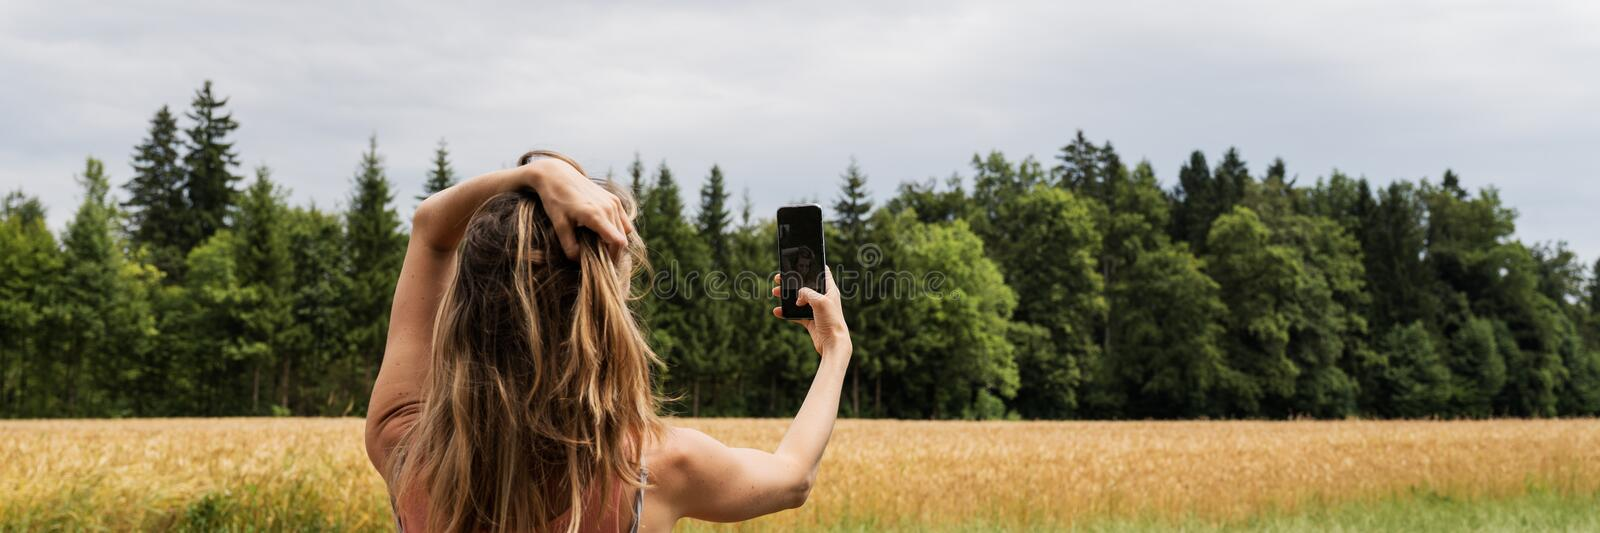 Young woman making a selfie outside royalty free stock image